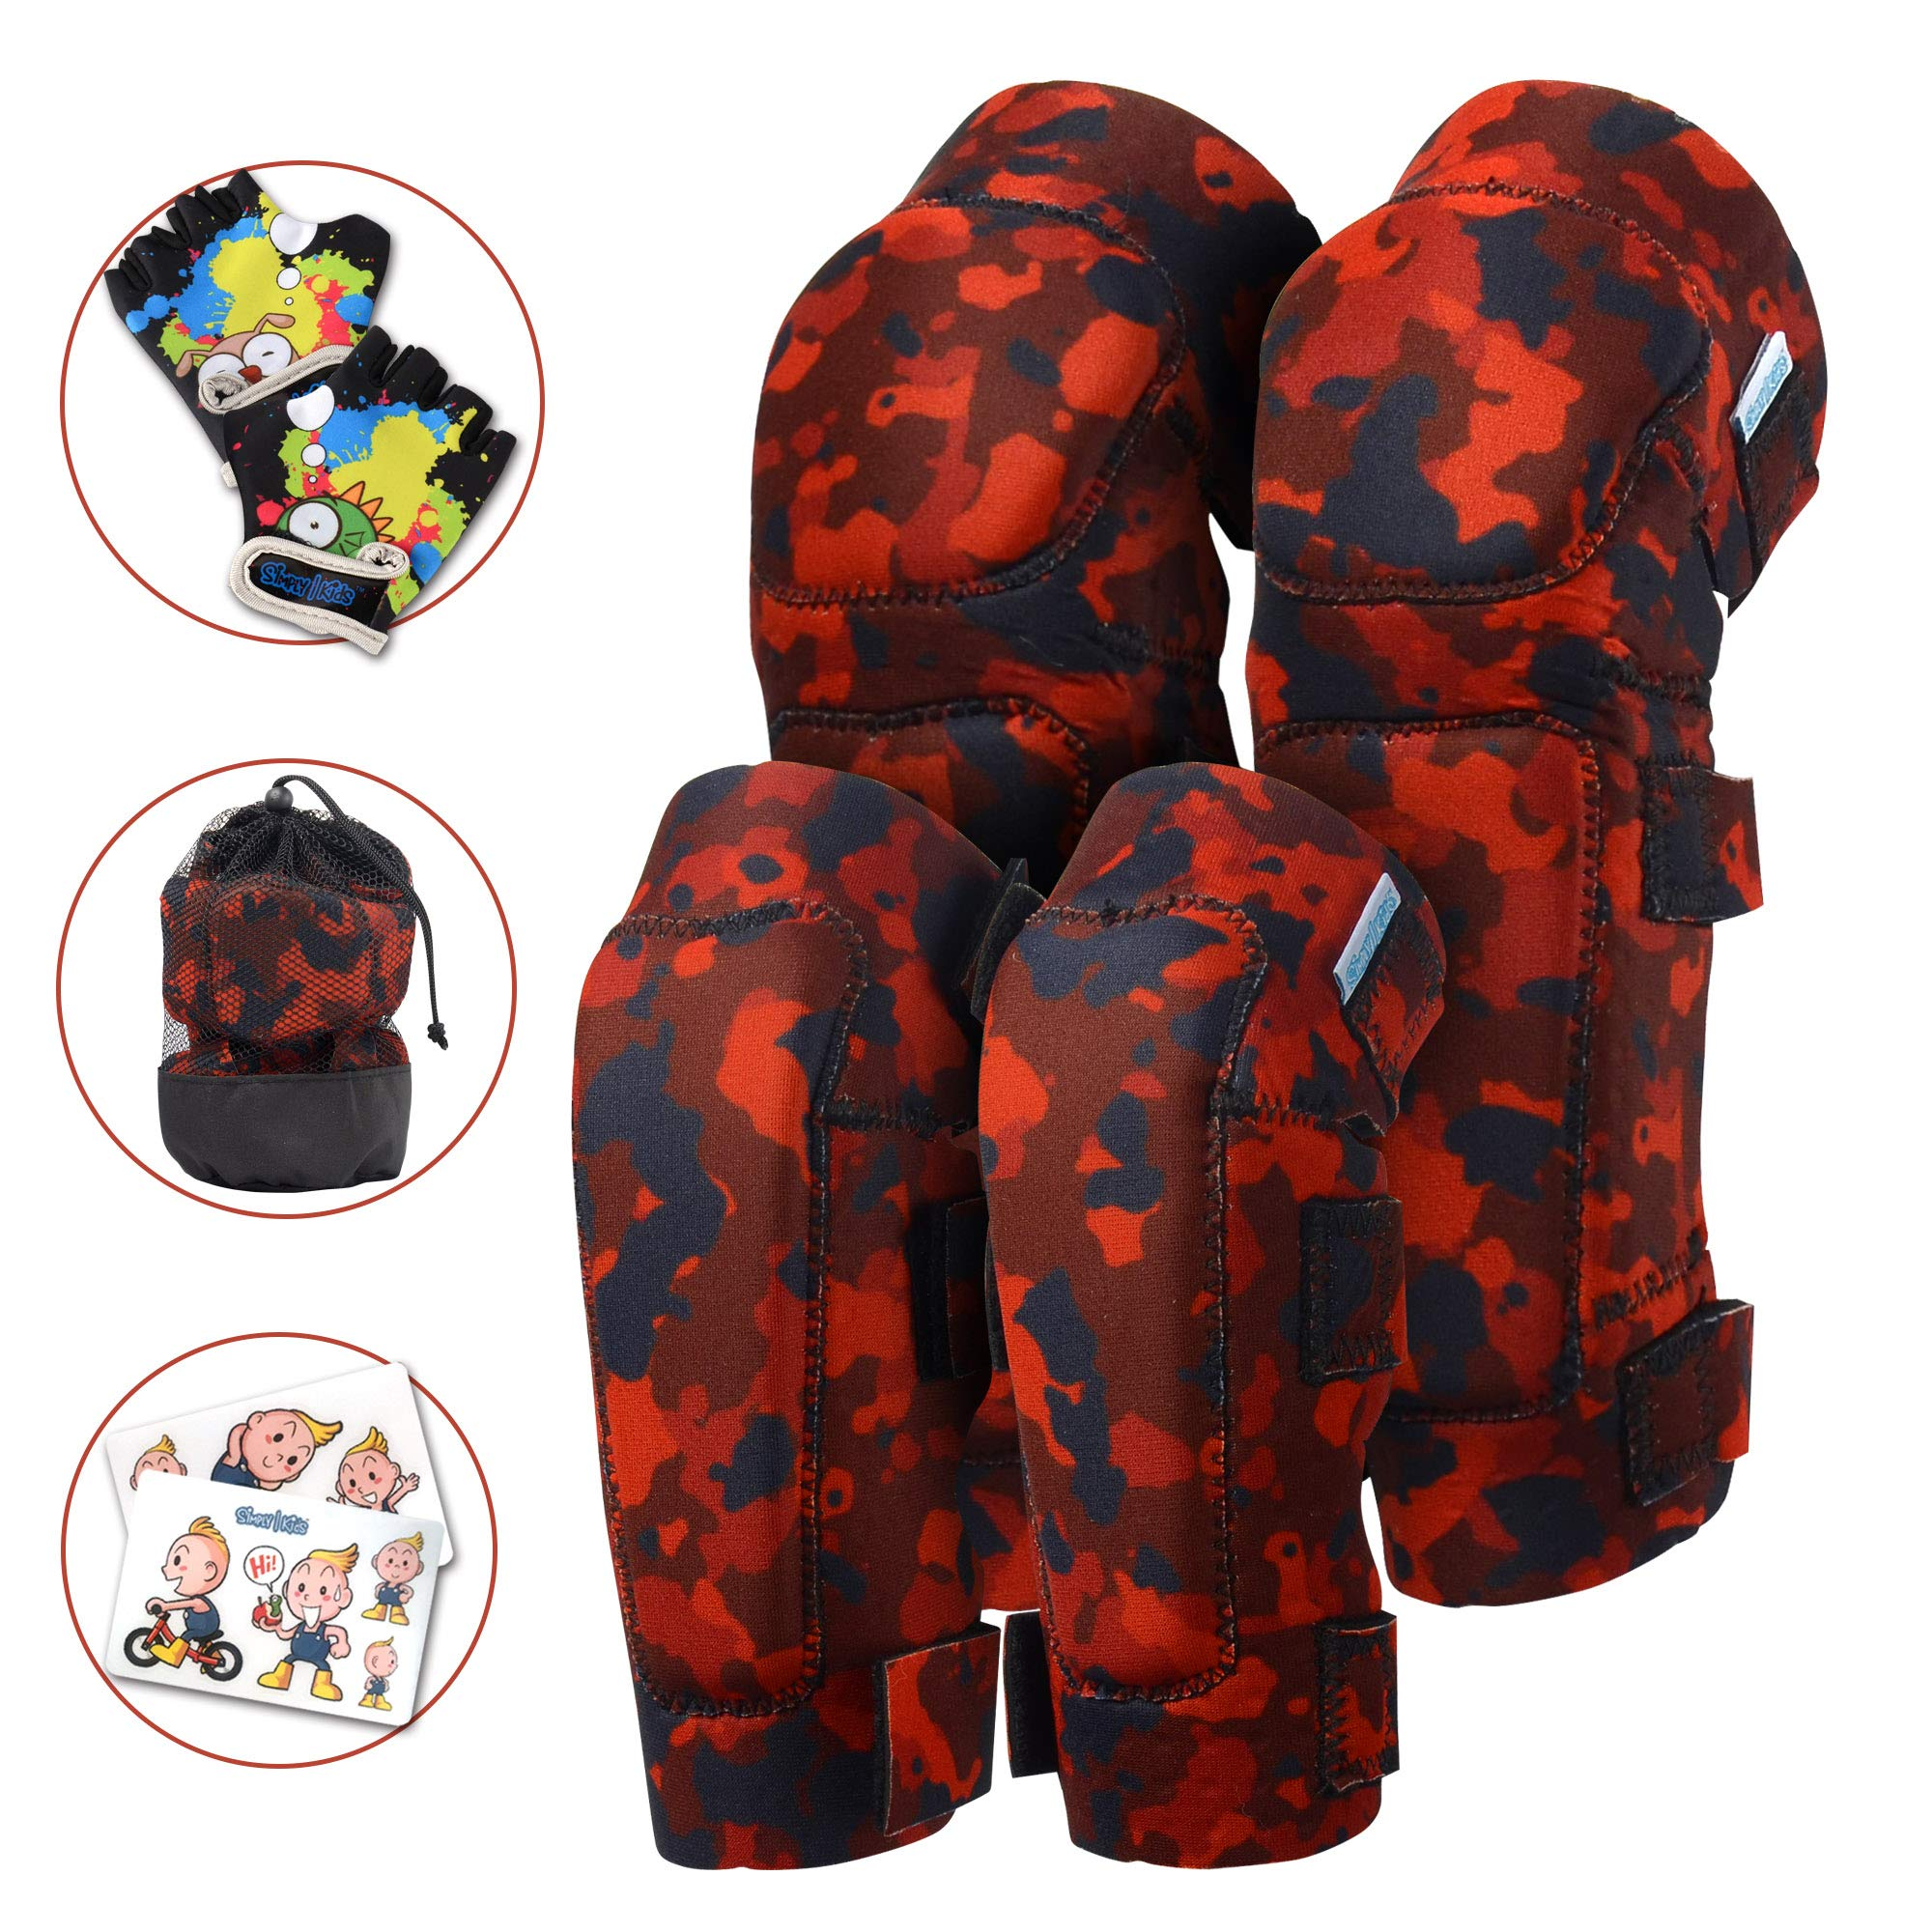 Innovative Soft Kids Knee and Elbow Pads with Bike Gloves | Toddler Protective Gear Set w/Bag | Roller-Skating, Skateboard, Bike for Children Boys Girls ((2nd Gen) Fire Camo, Medium (4-8 Years))